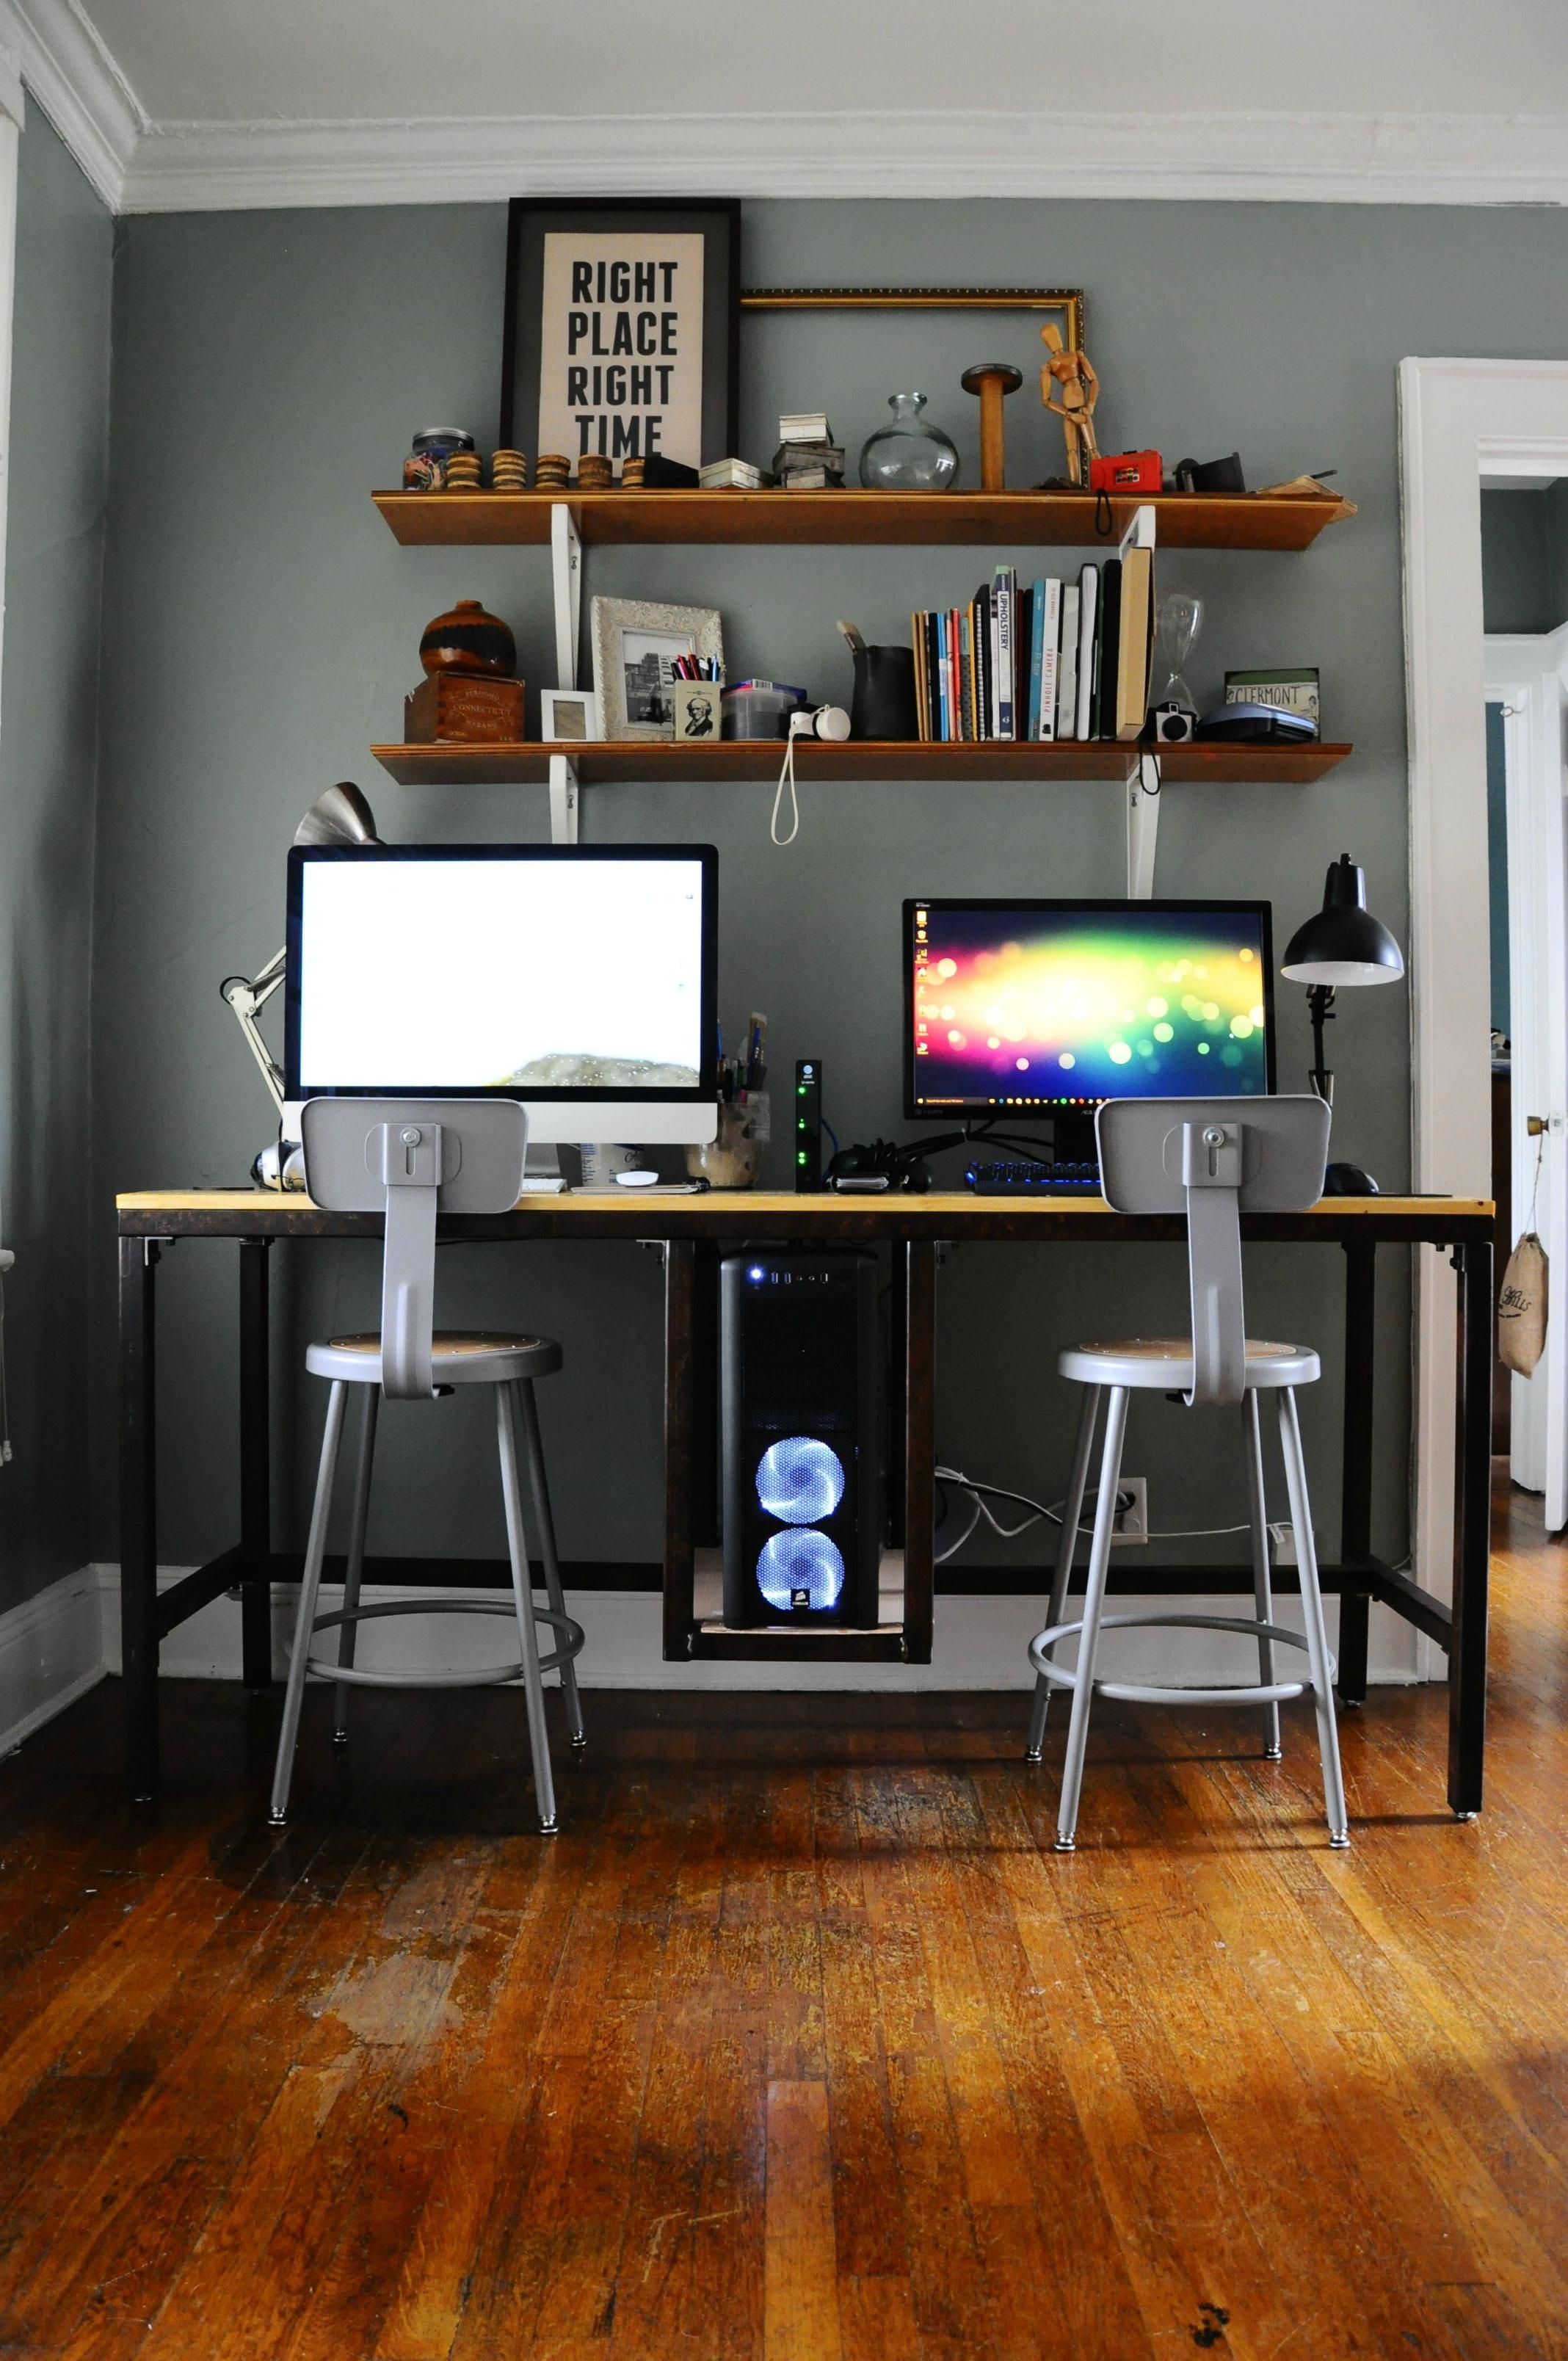 His and Her Custom Desk Battlestation